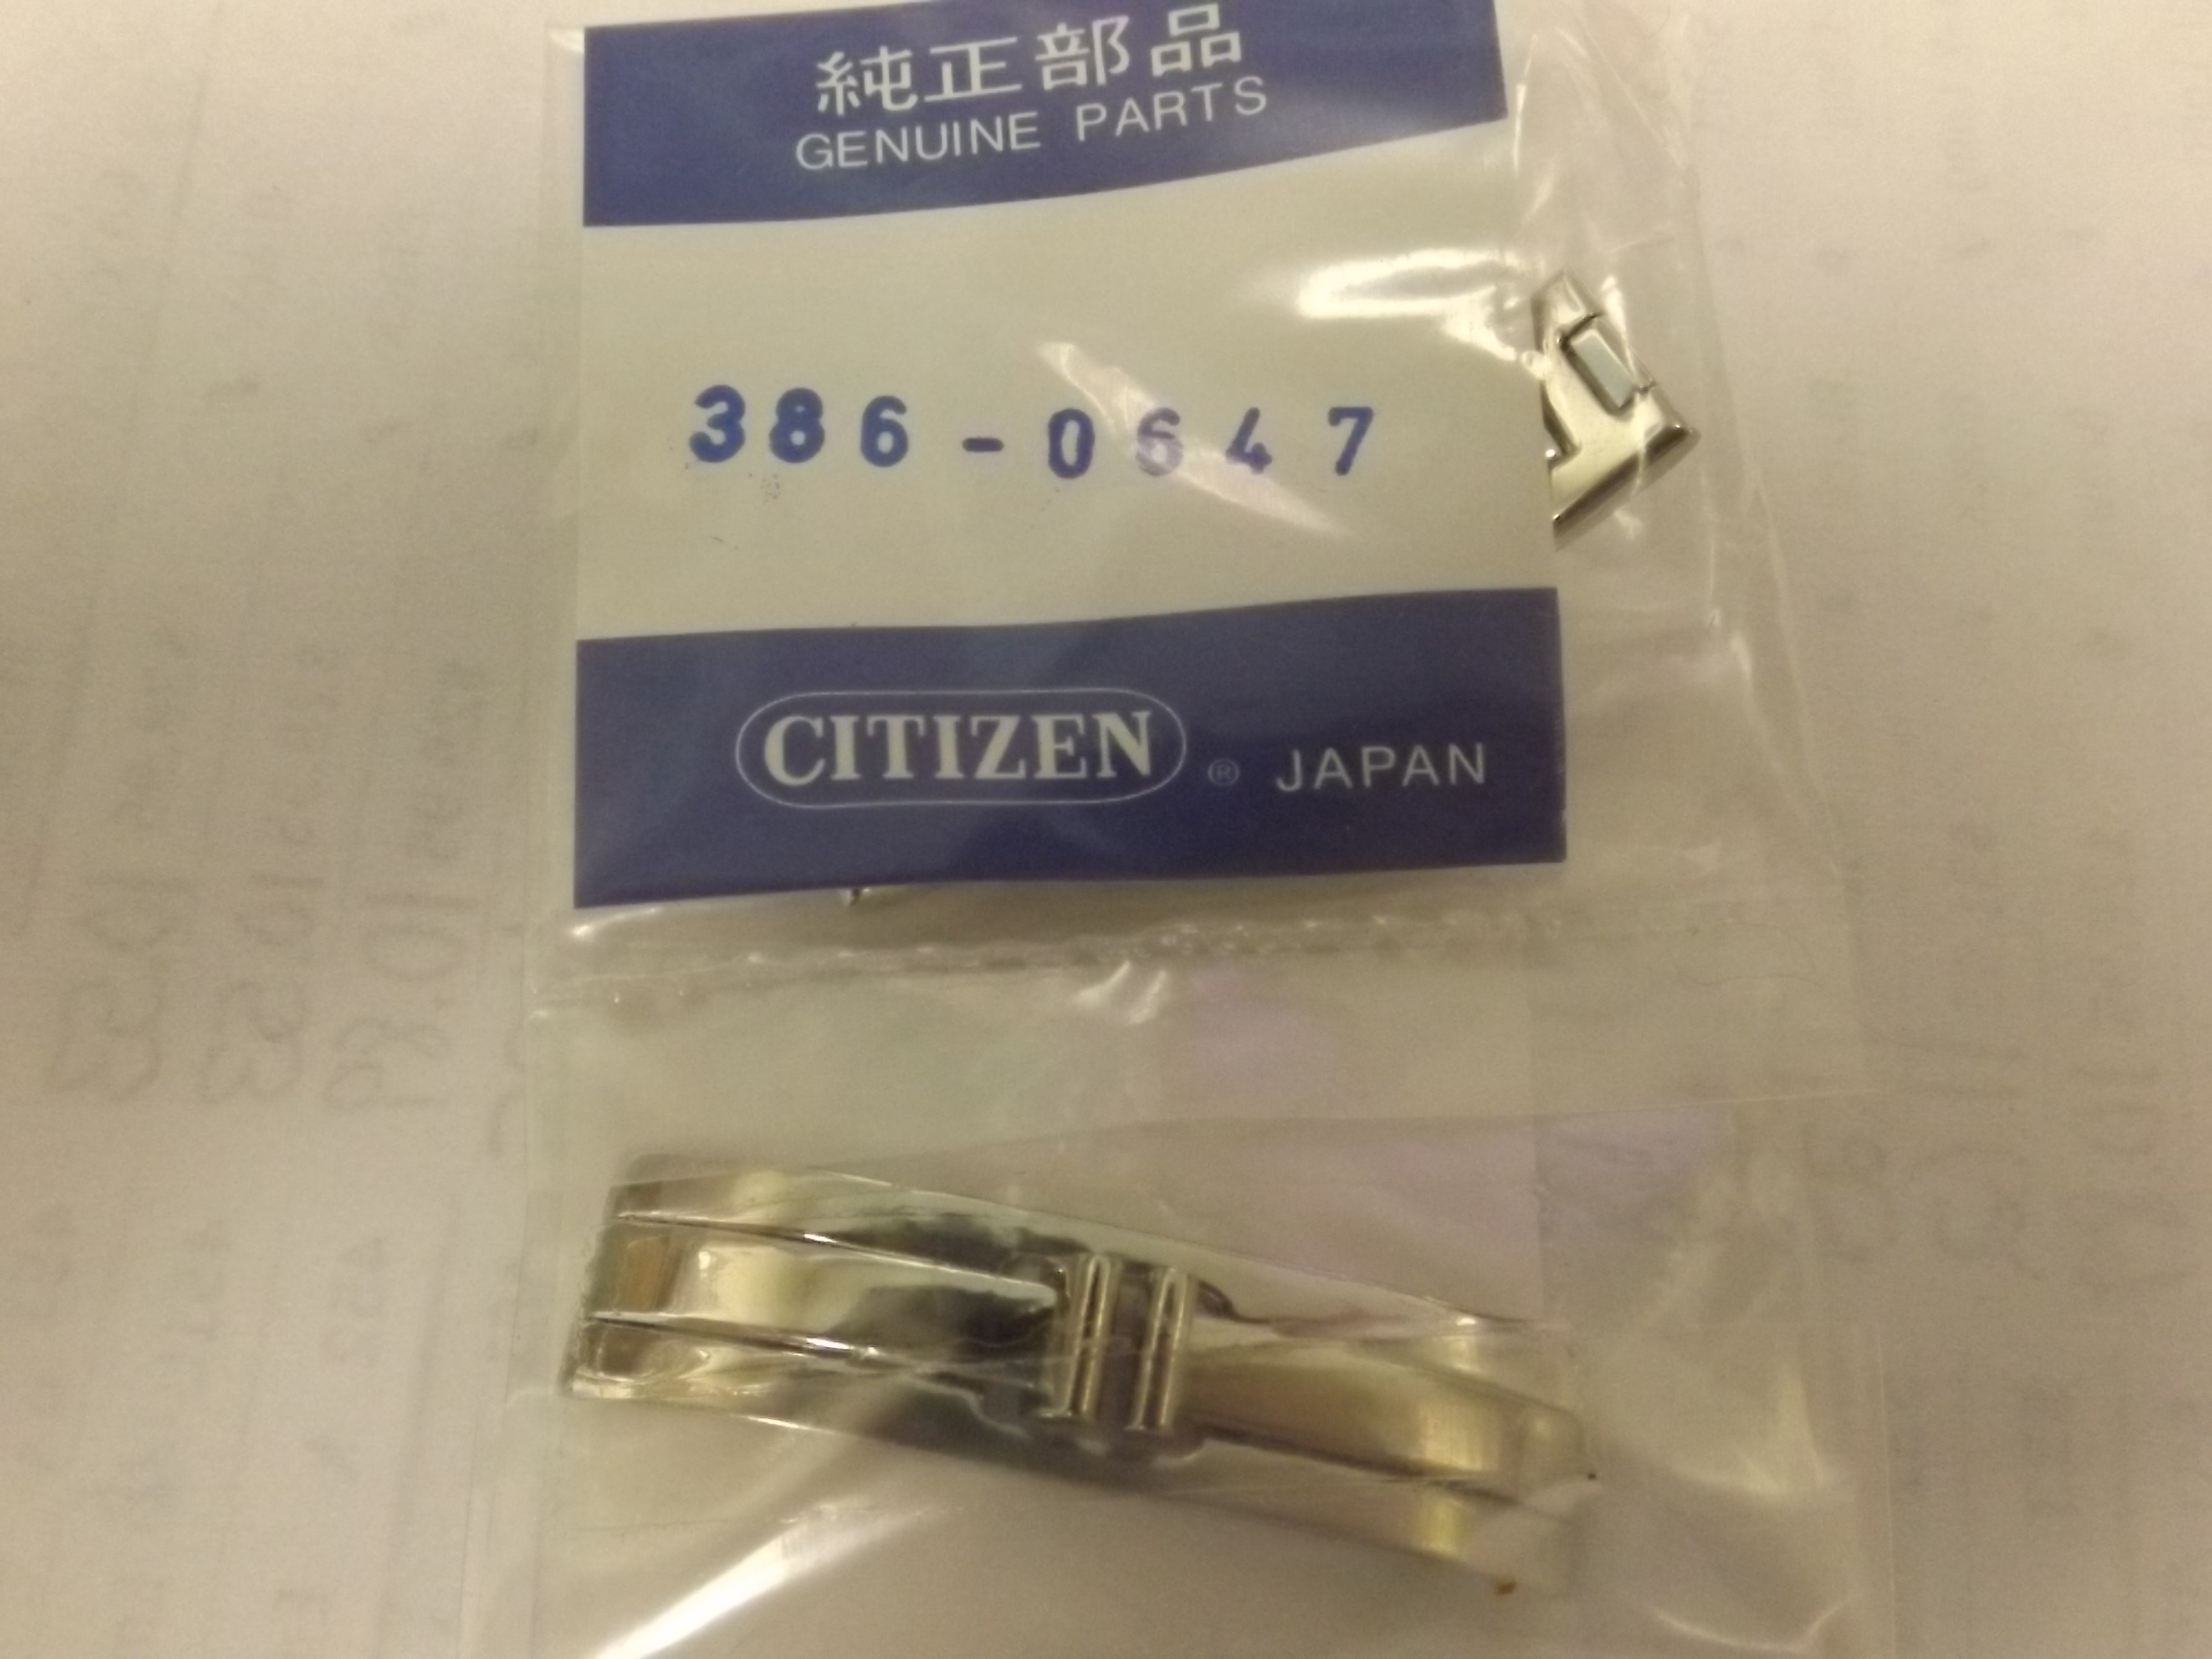 386-0647 Citizen Butterfly Style Clasp, Silver 9.7mm